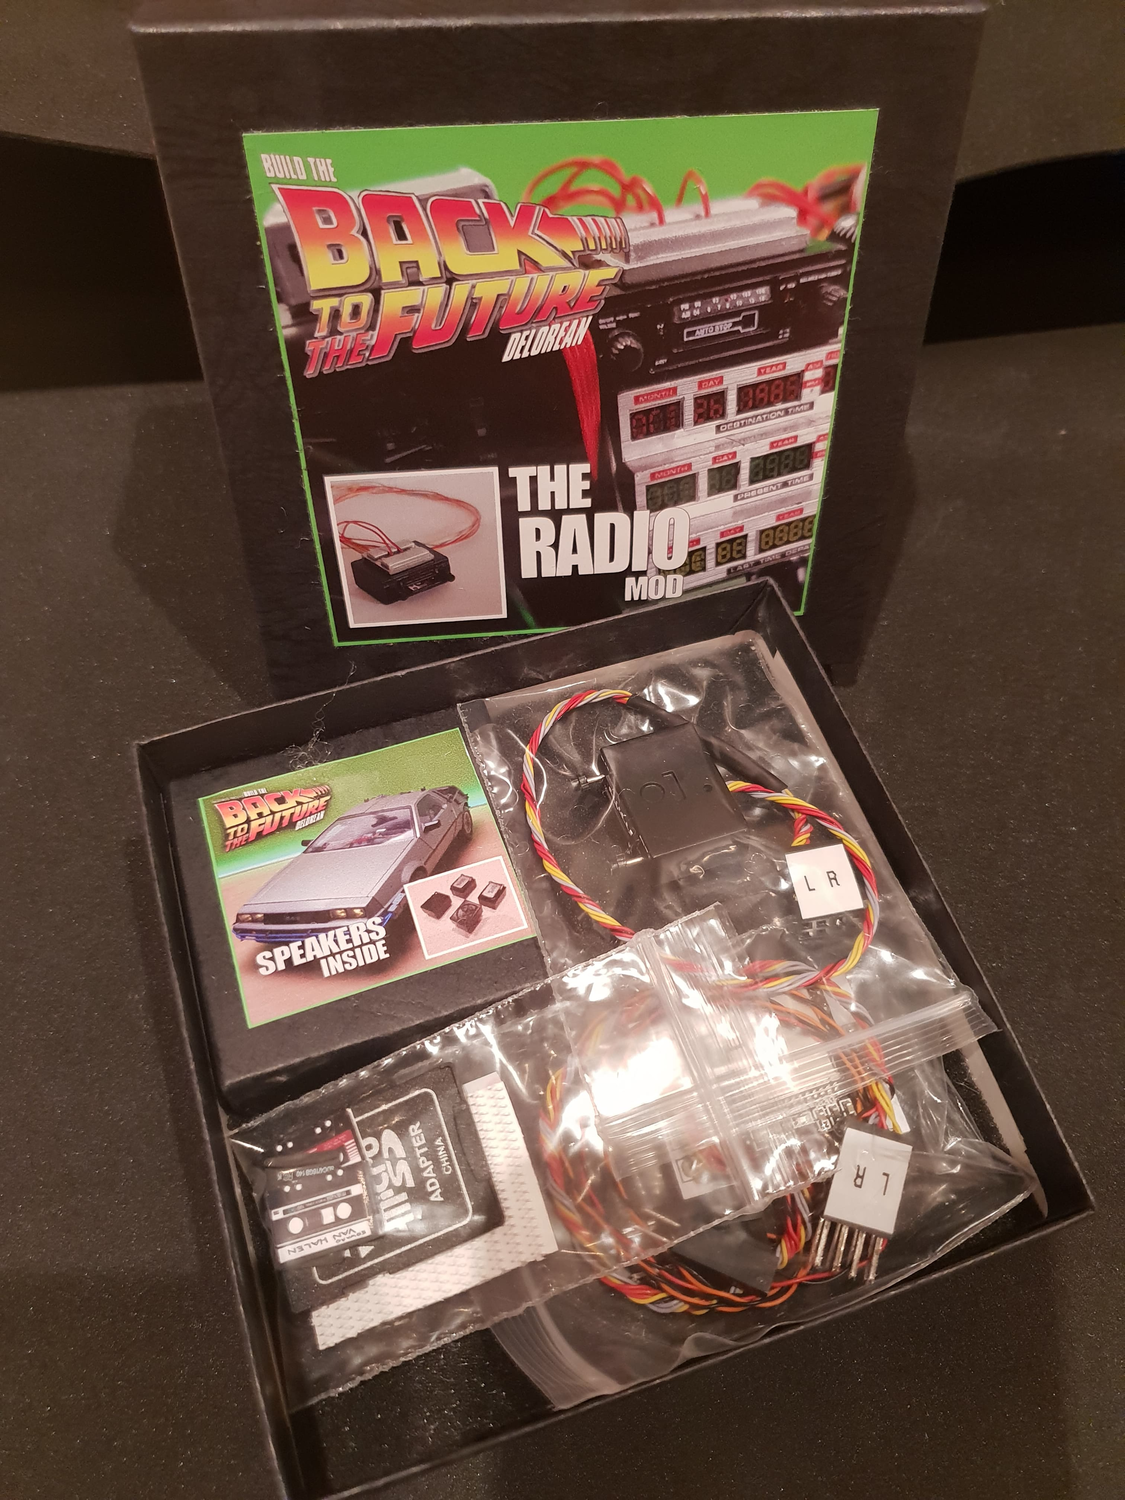 Delorean 1:8 Scale Radio Mod